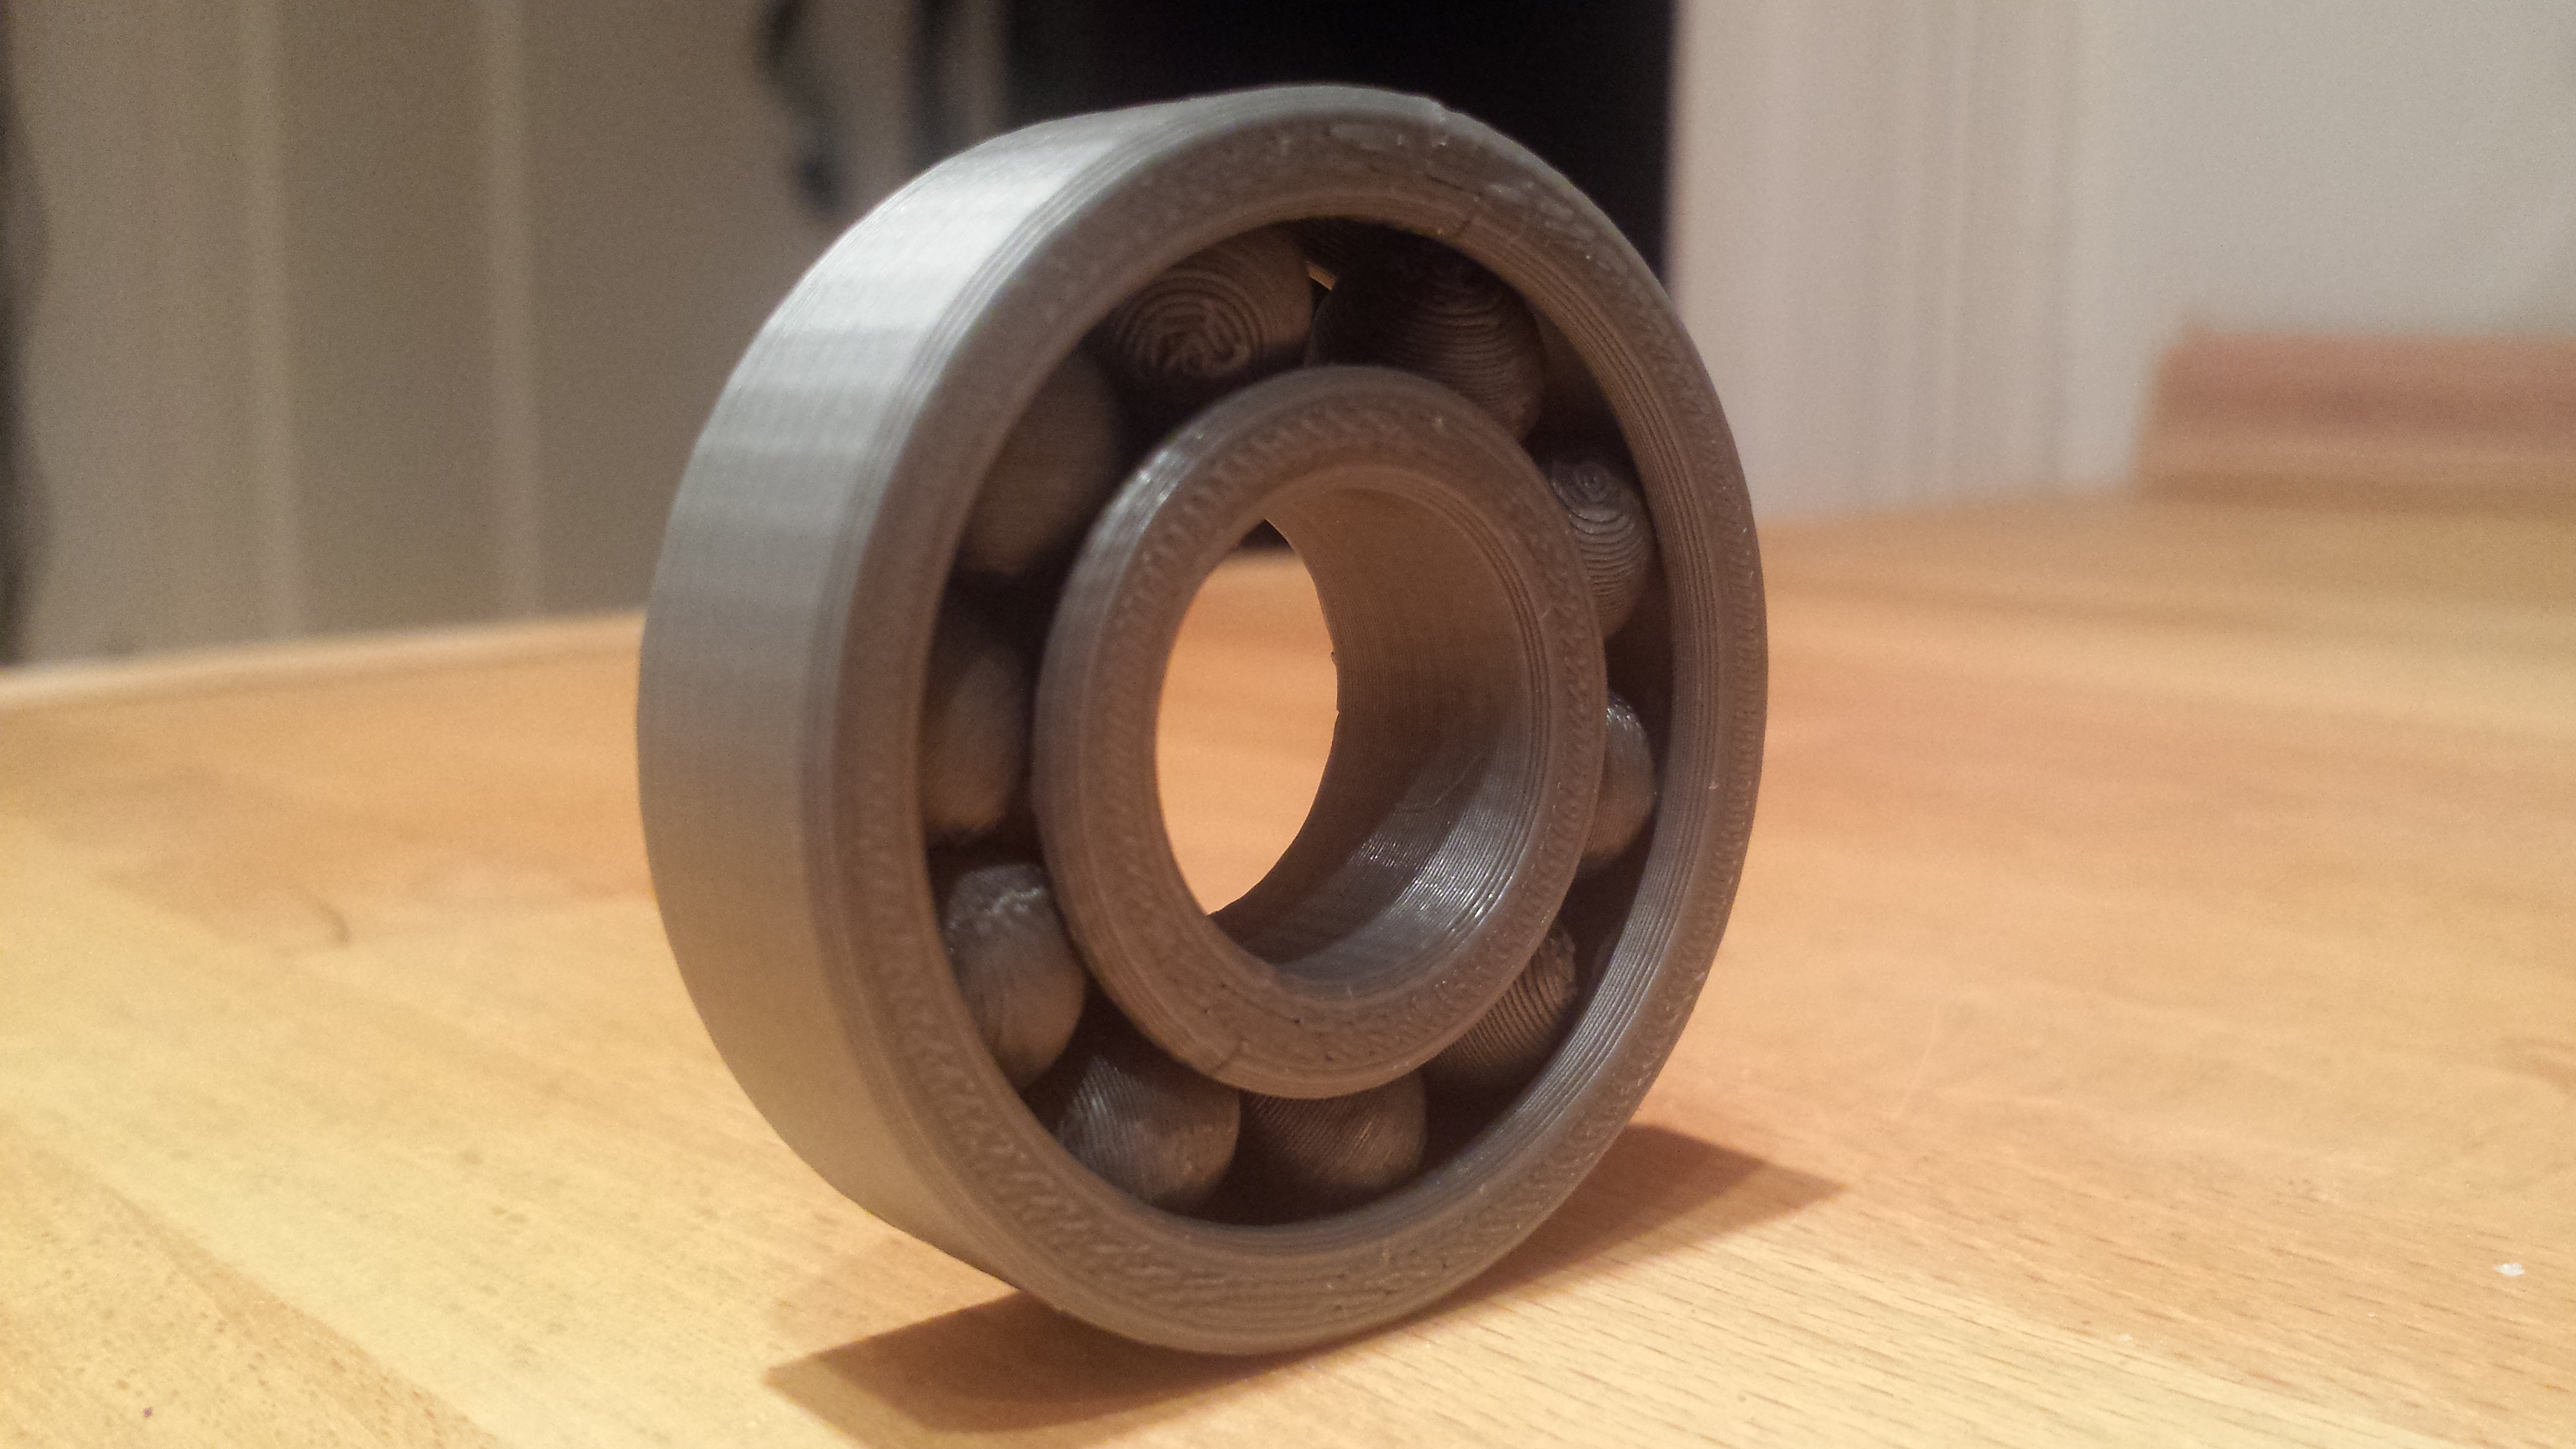 Picture of print of Impossible Bearings Mini This print has been uploaded by Daniel Poddig